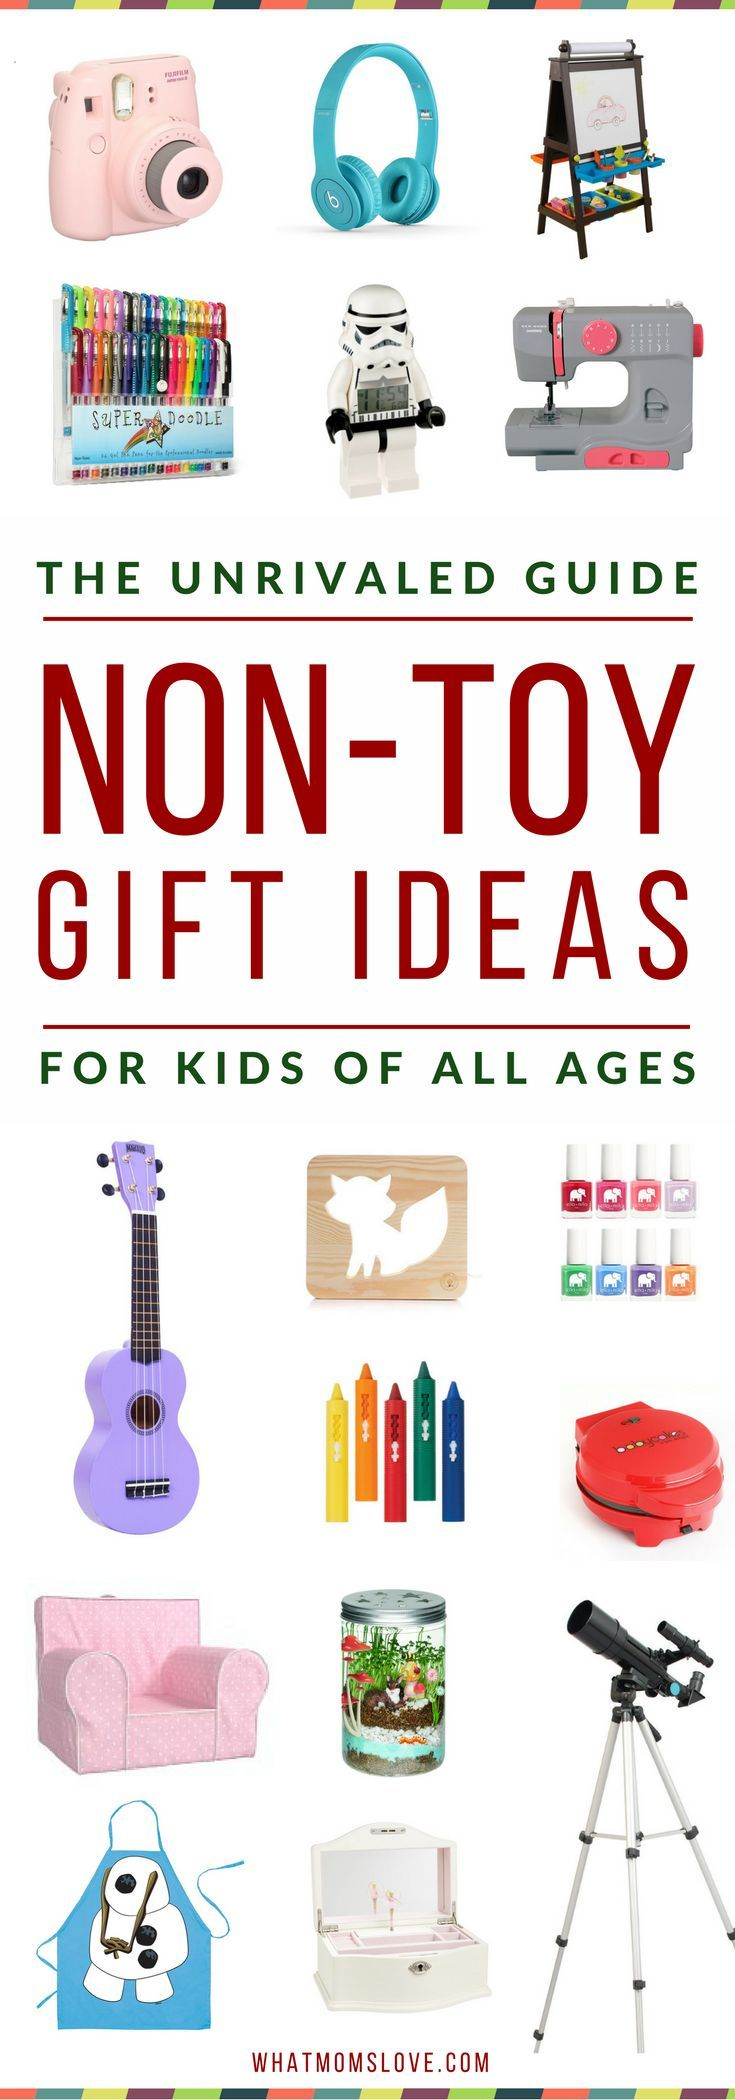 Overloaded with toys? Learn over 200 incredible gift ideas for kids that AREN'T toys in this awesome Non-Toy Gift Guide. Perfect for toddlers to tweens and teens, girls or boys, for Holidays, birthdays and special occasions. Click for fun present ideas PL